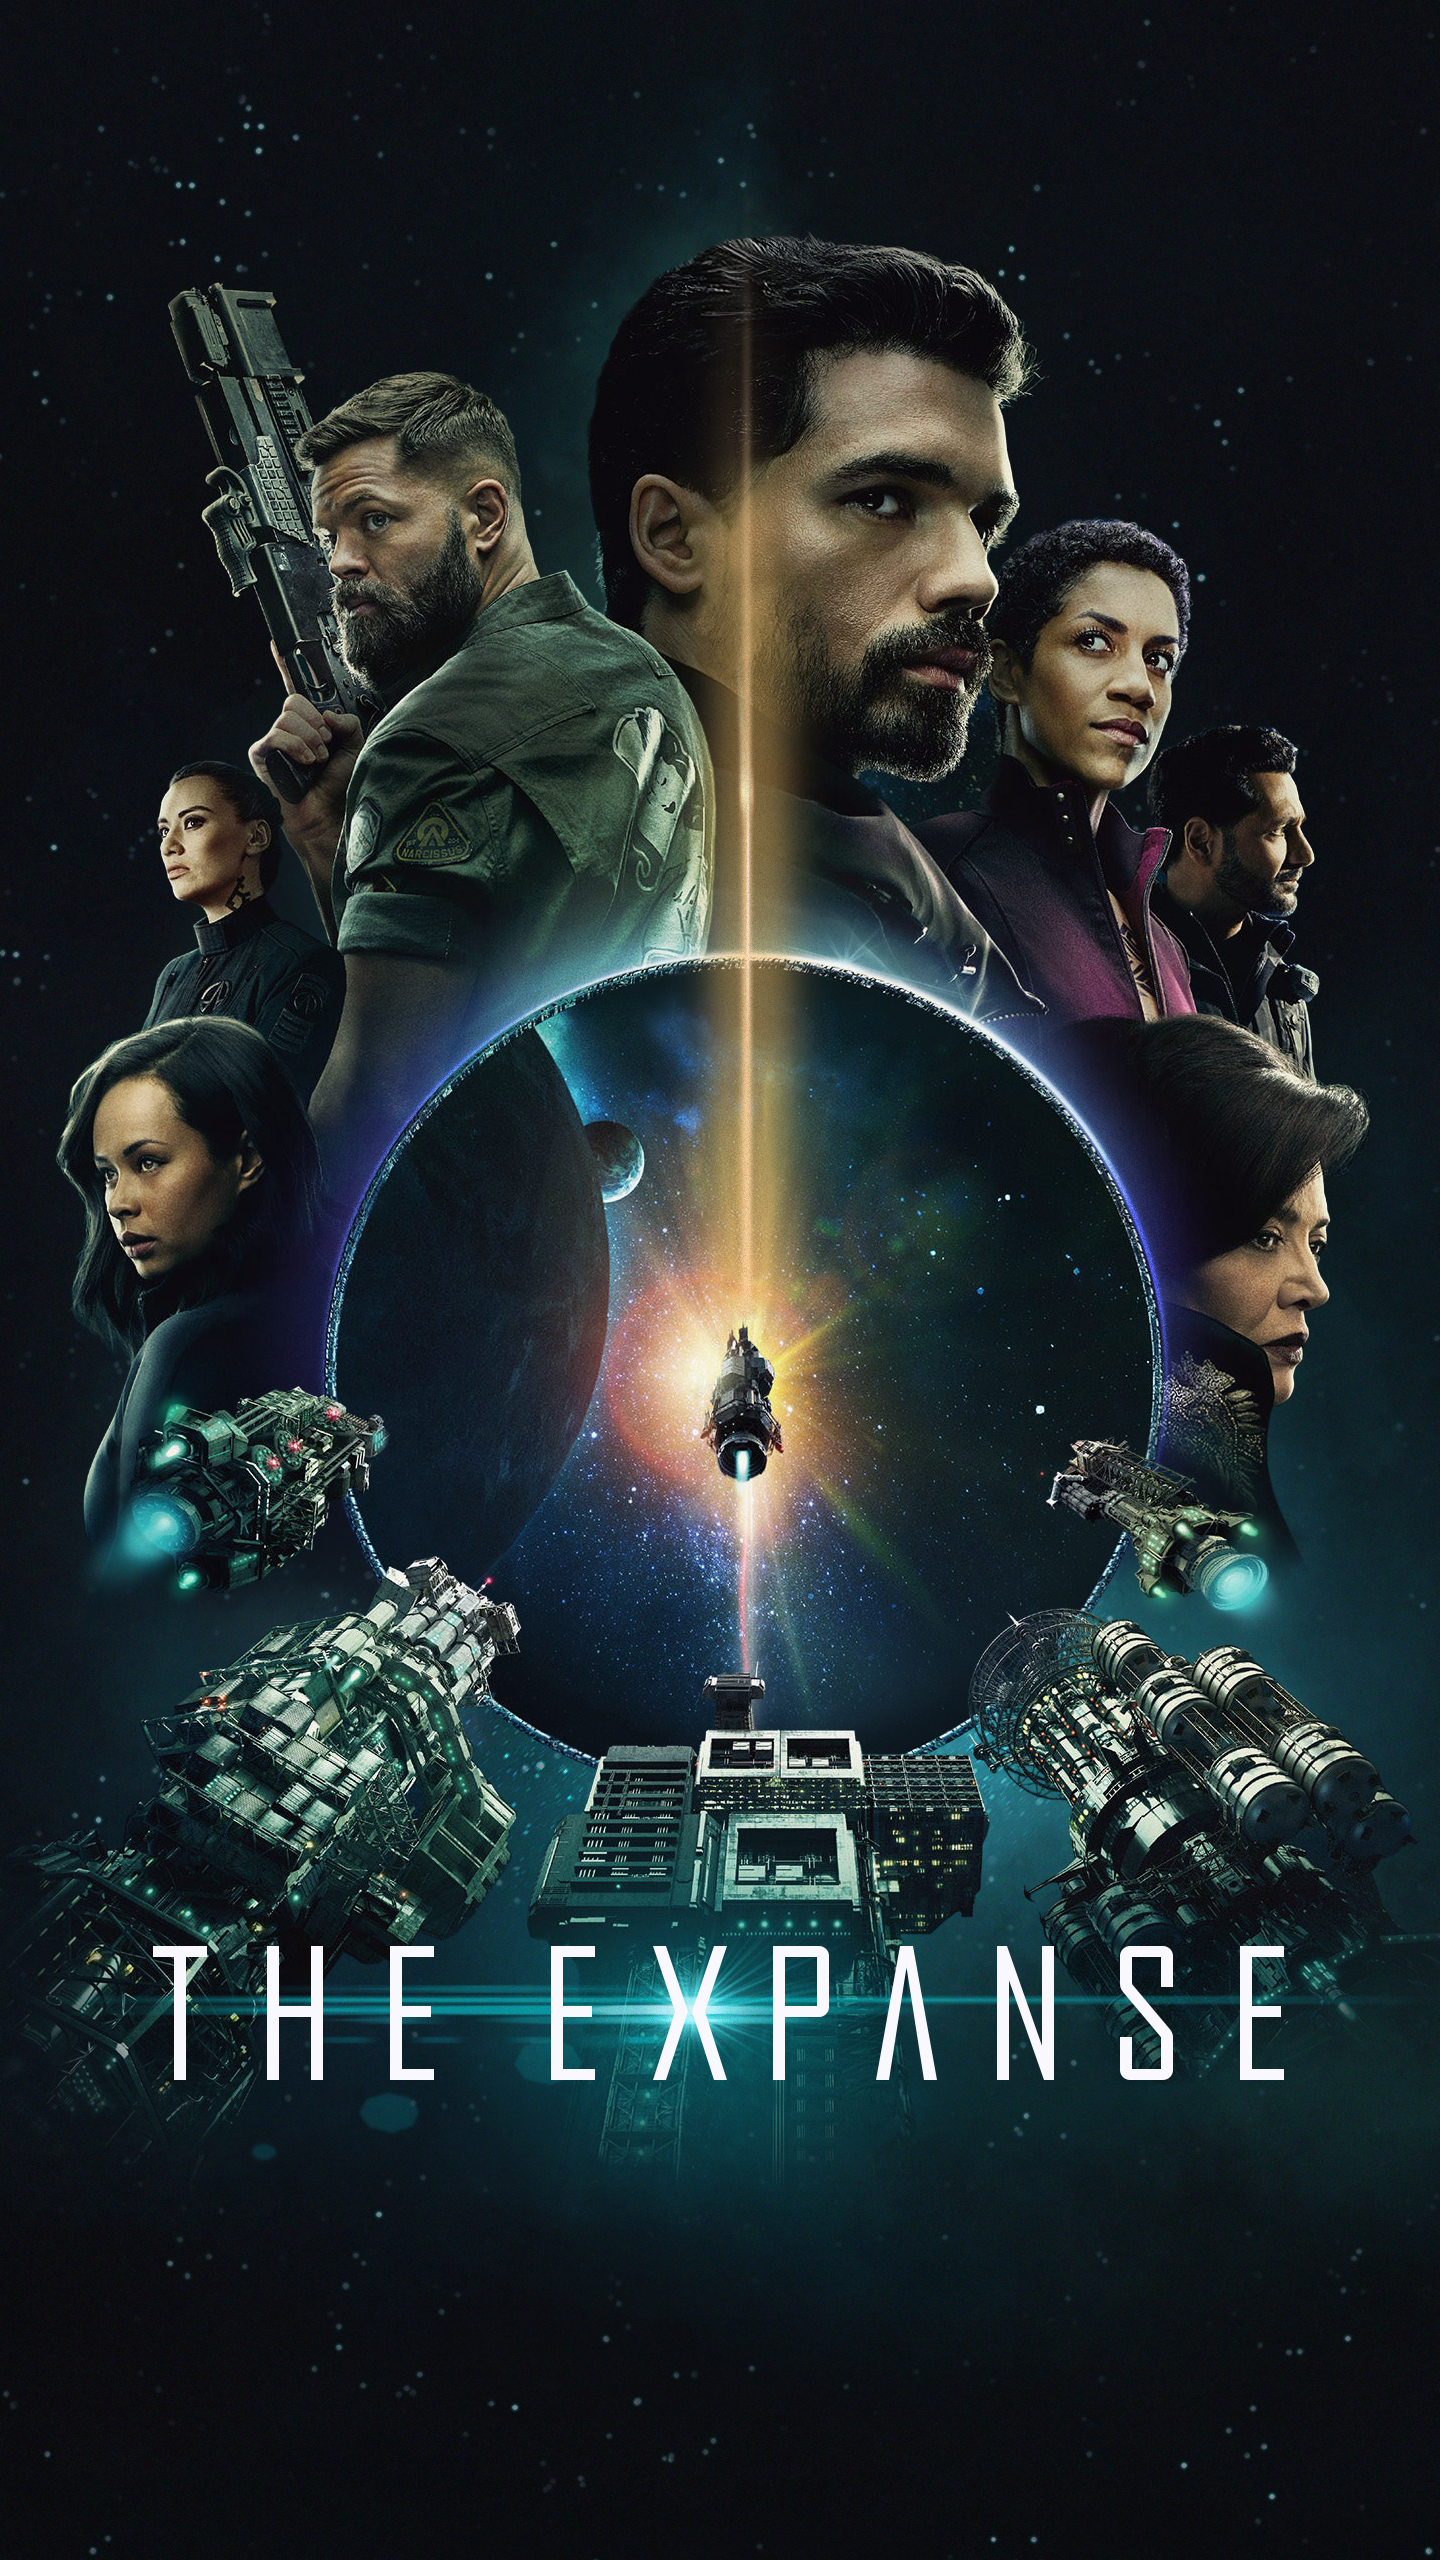 The Expanse Wallpaper Phone